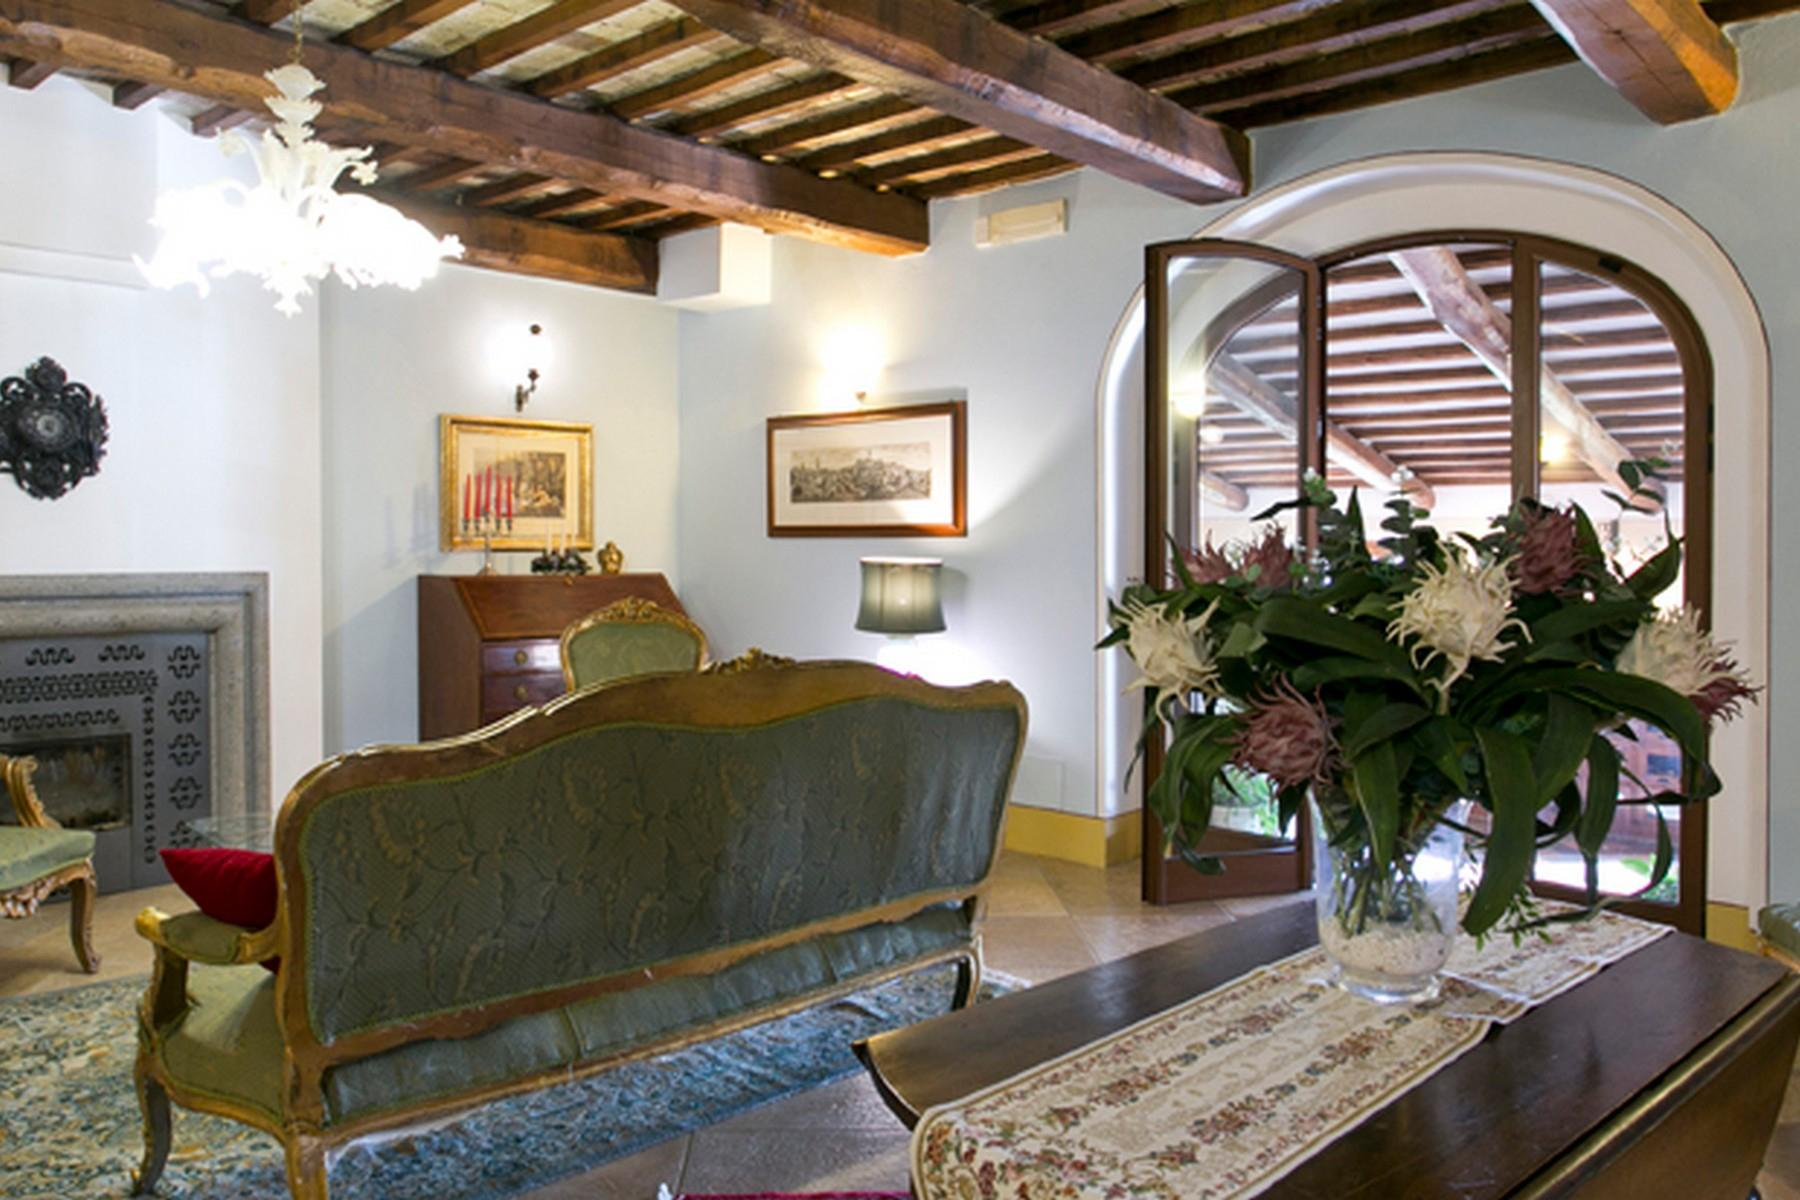 Beautiful Boutique Hotel with Restaurant and SPA in the hills of Torrita di Siena - 32